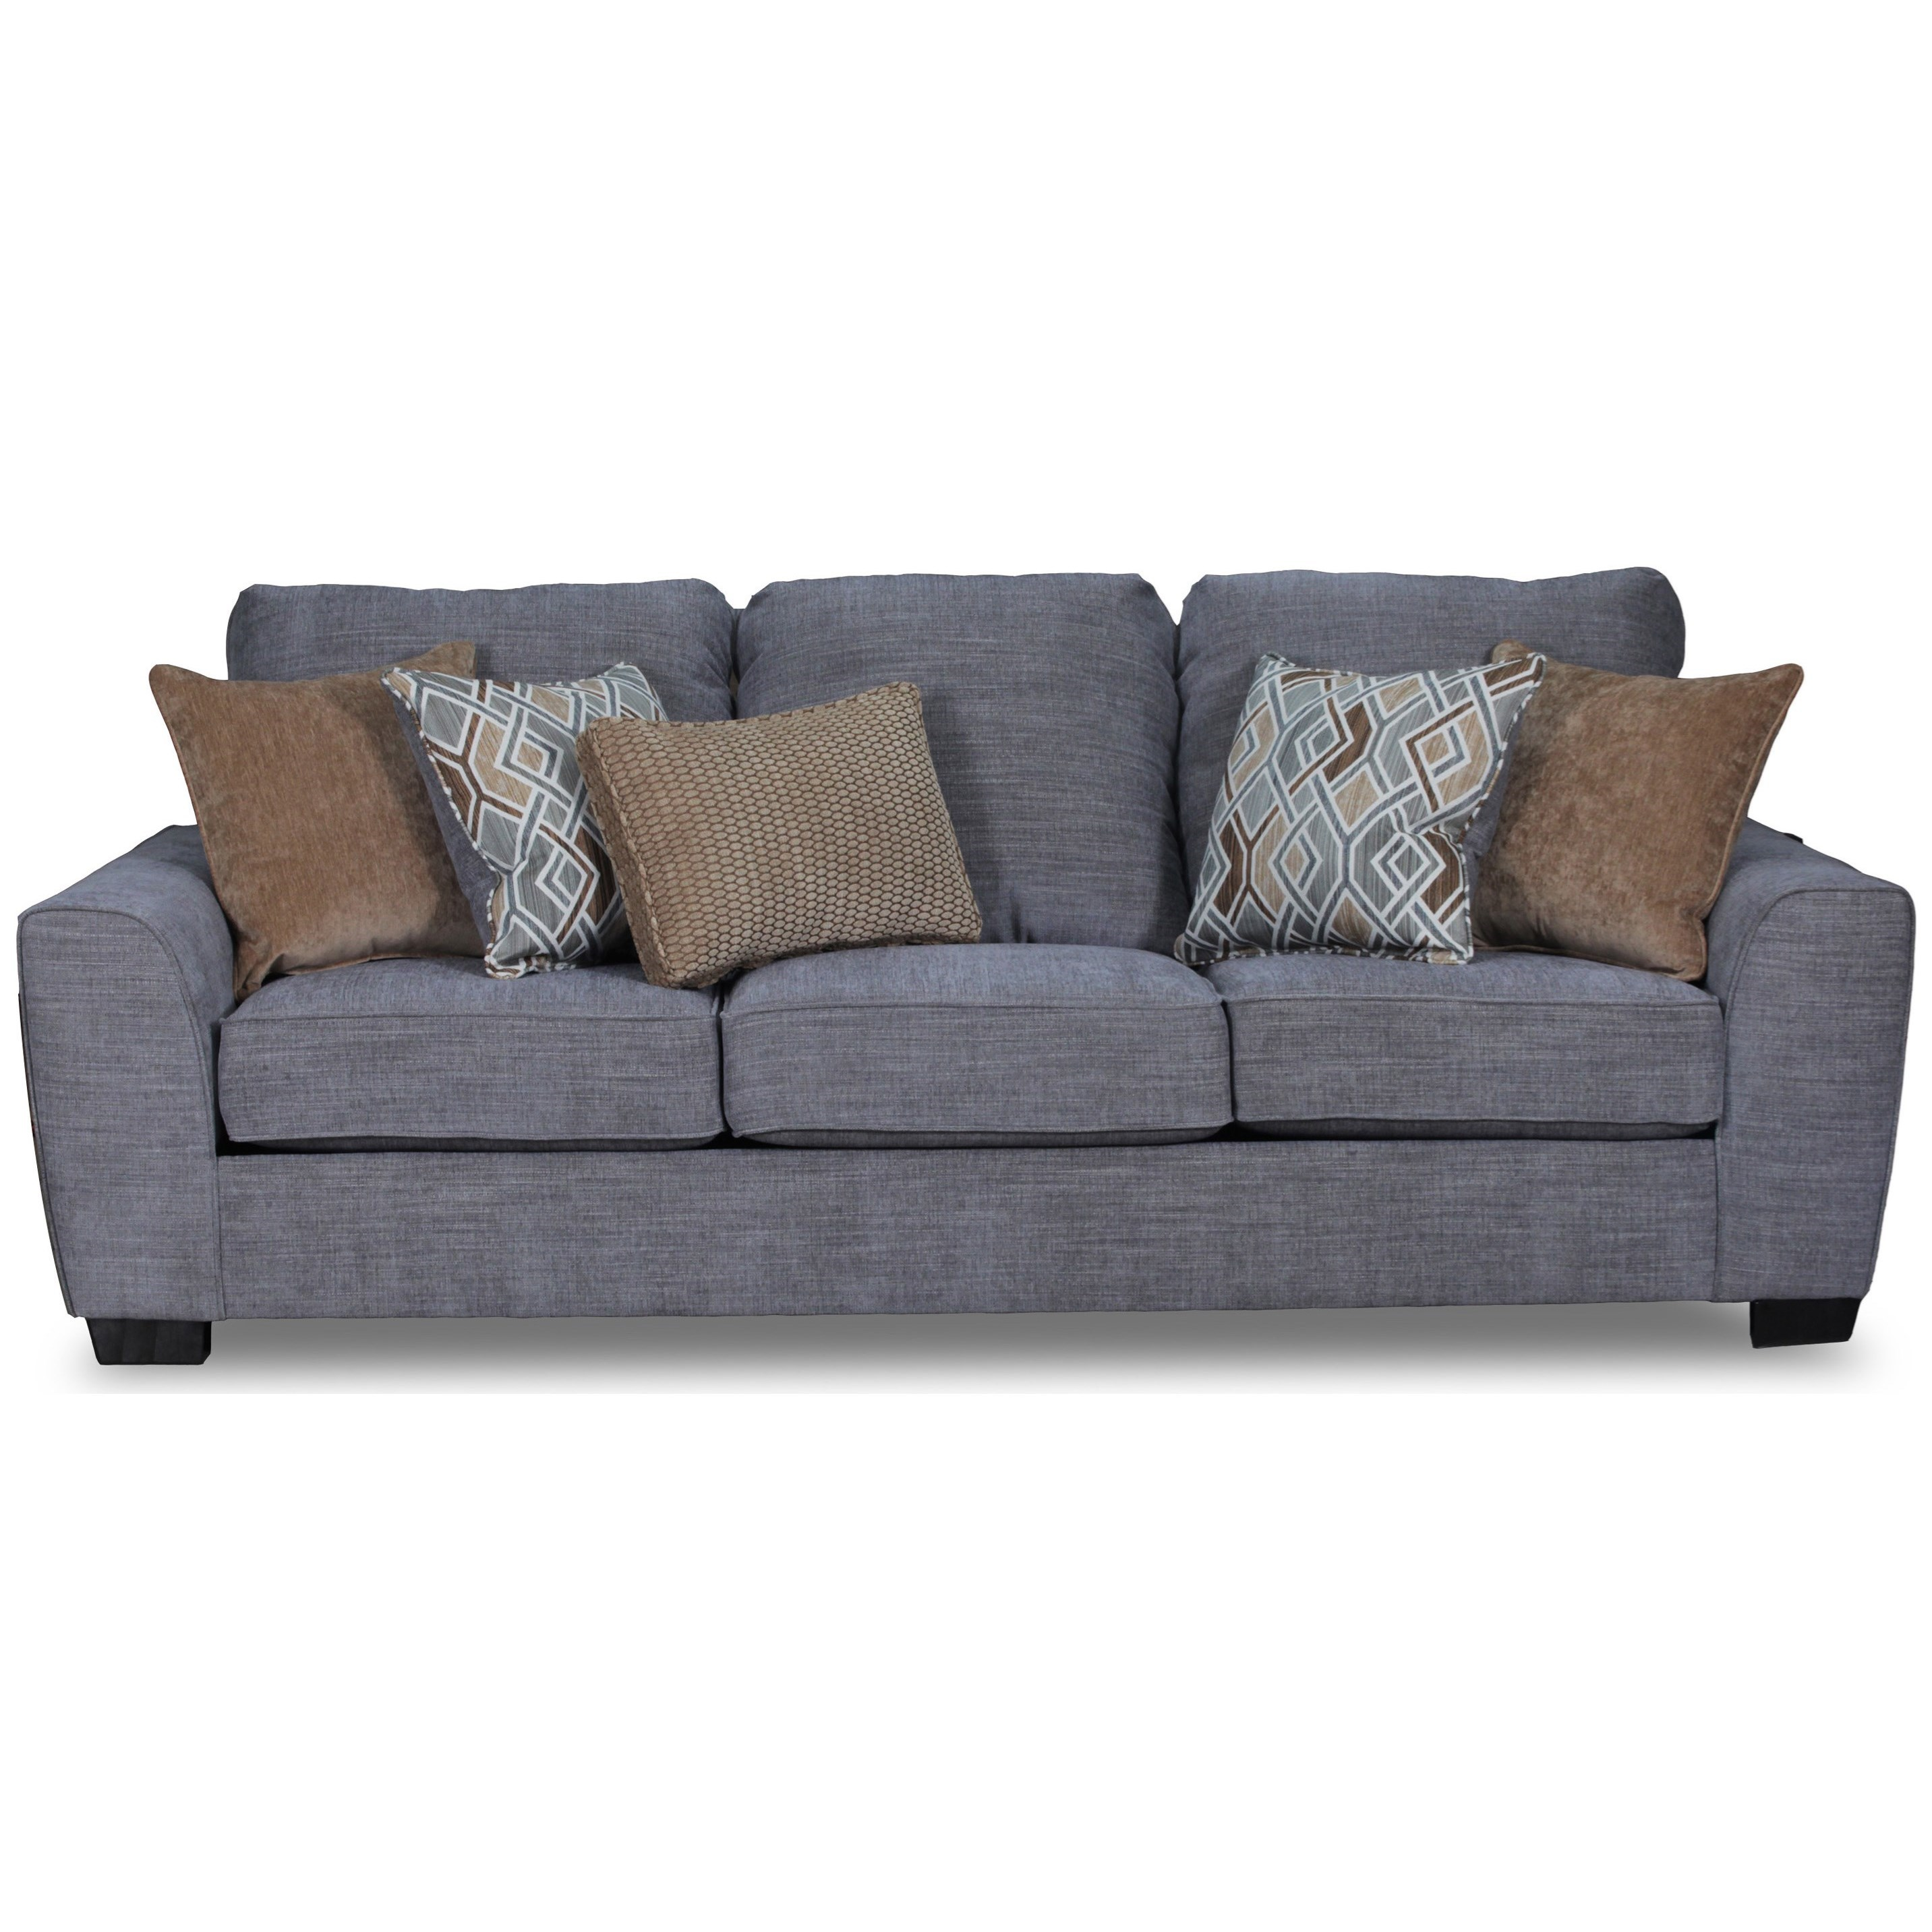 Contemporary Couch 9770br Contemporary Sofa By United Furniture Industries At Darvin Furniture